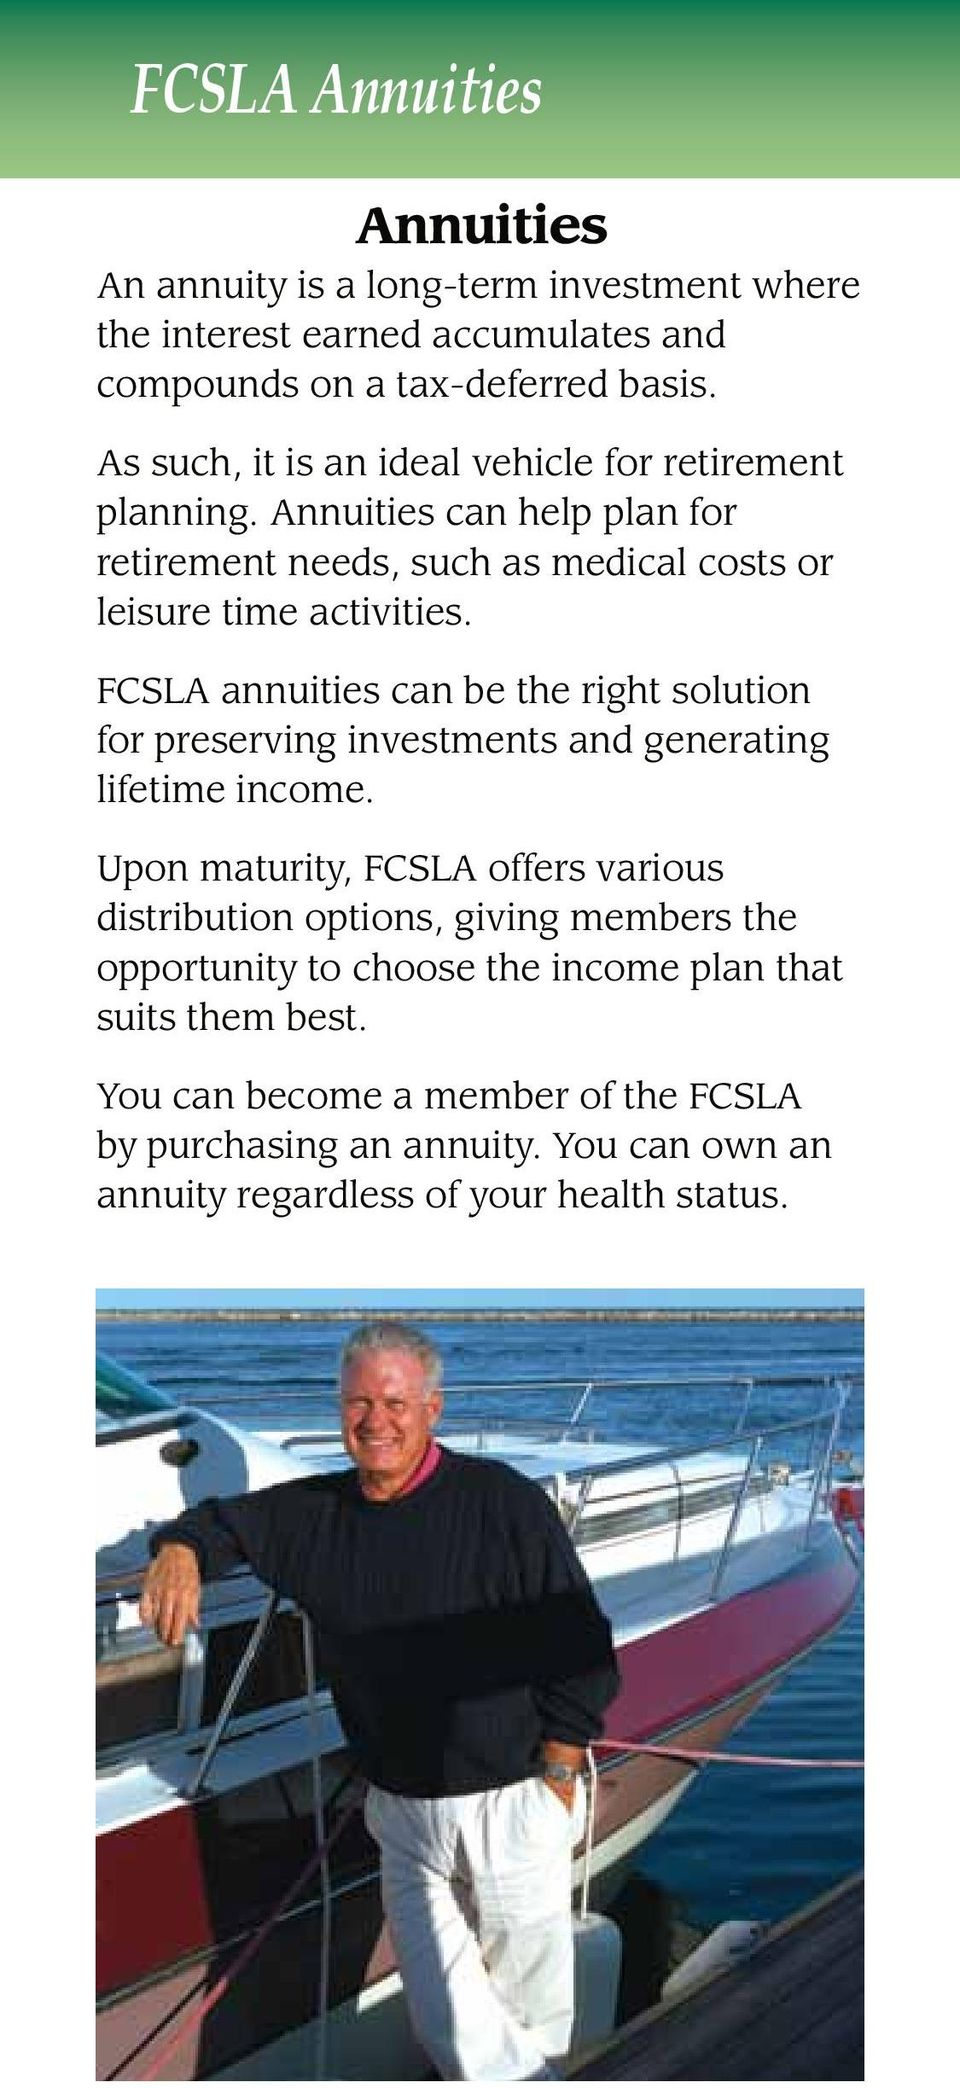 FCSLA annuities can be the right solution for preserving investments and generating lifetime income.